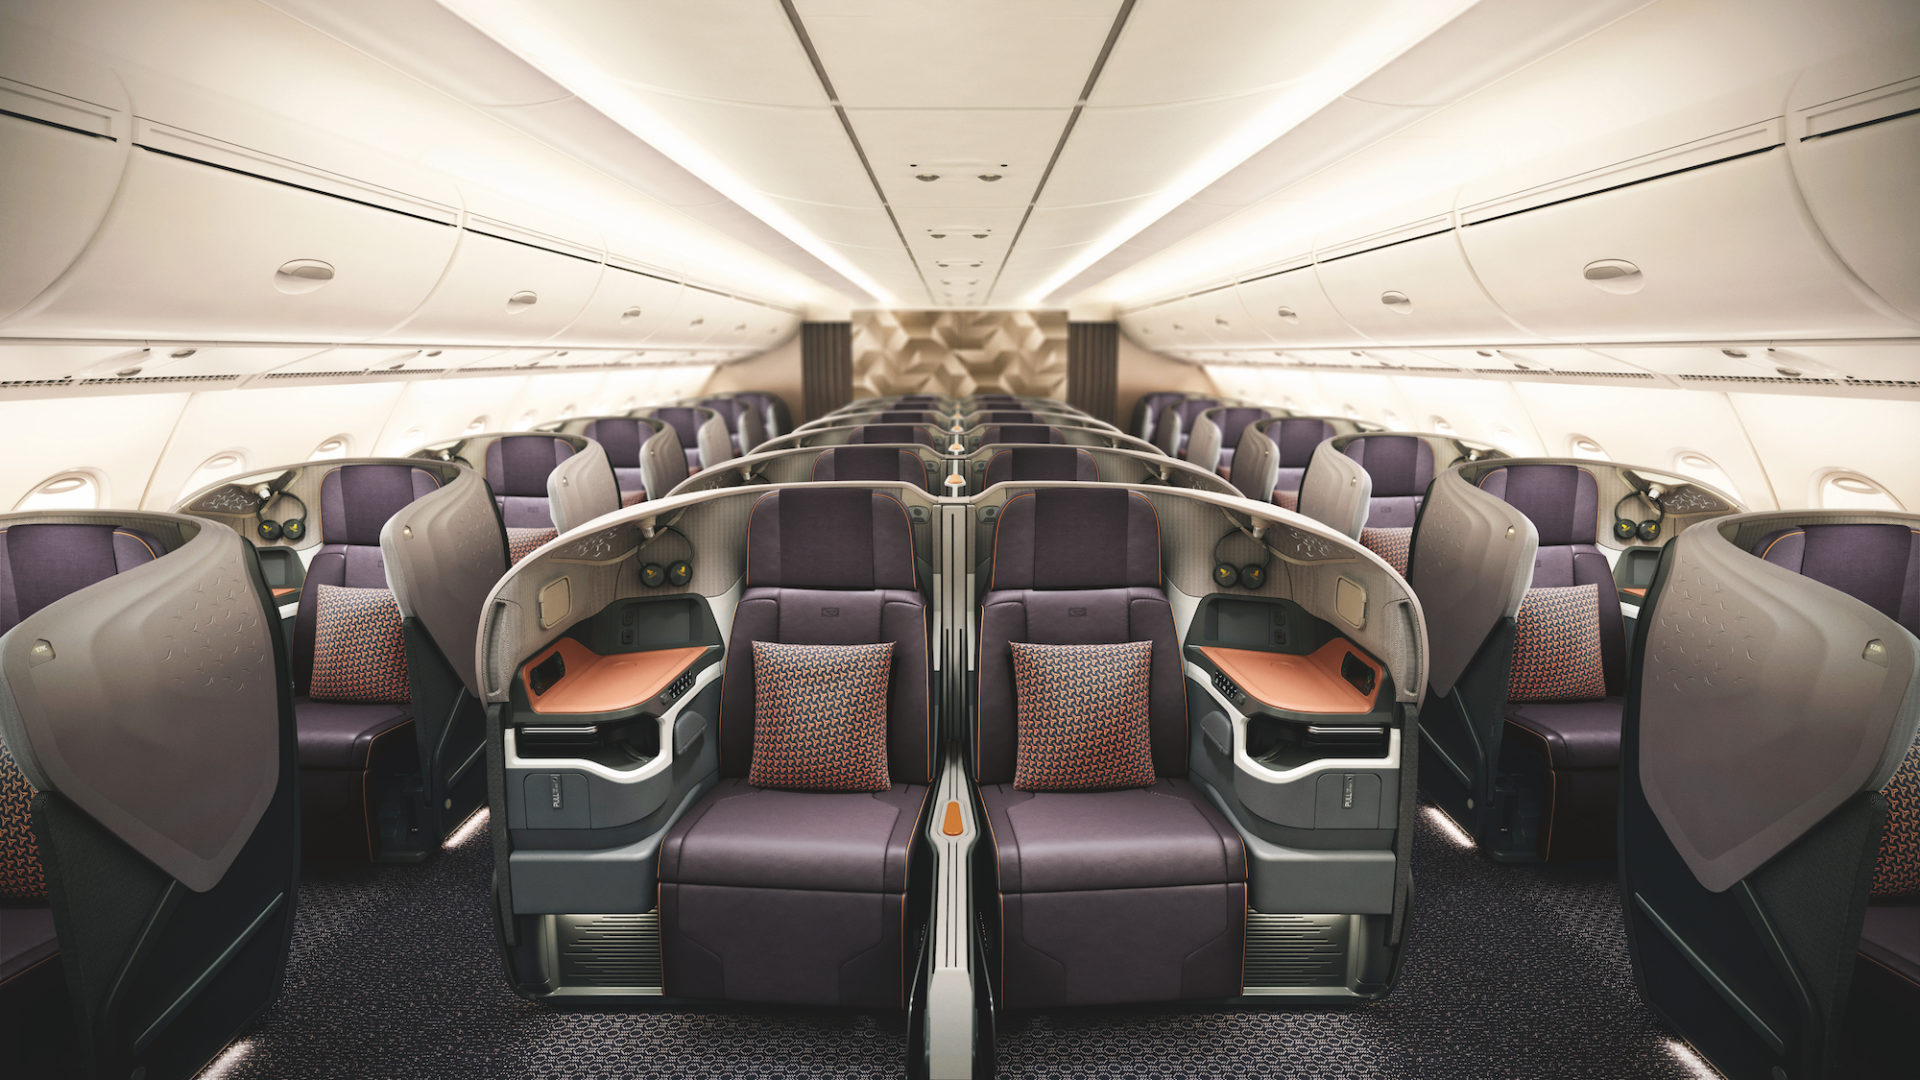 Singapore Airlines Business Class widok ogolny